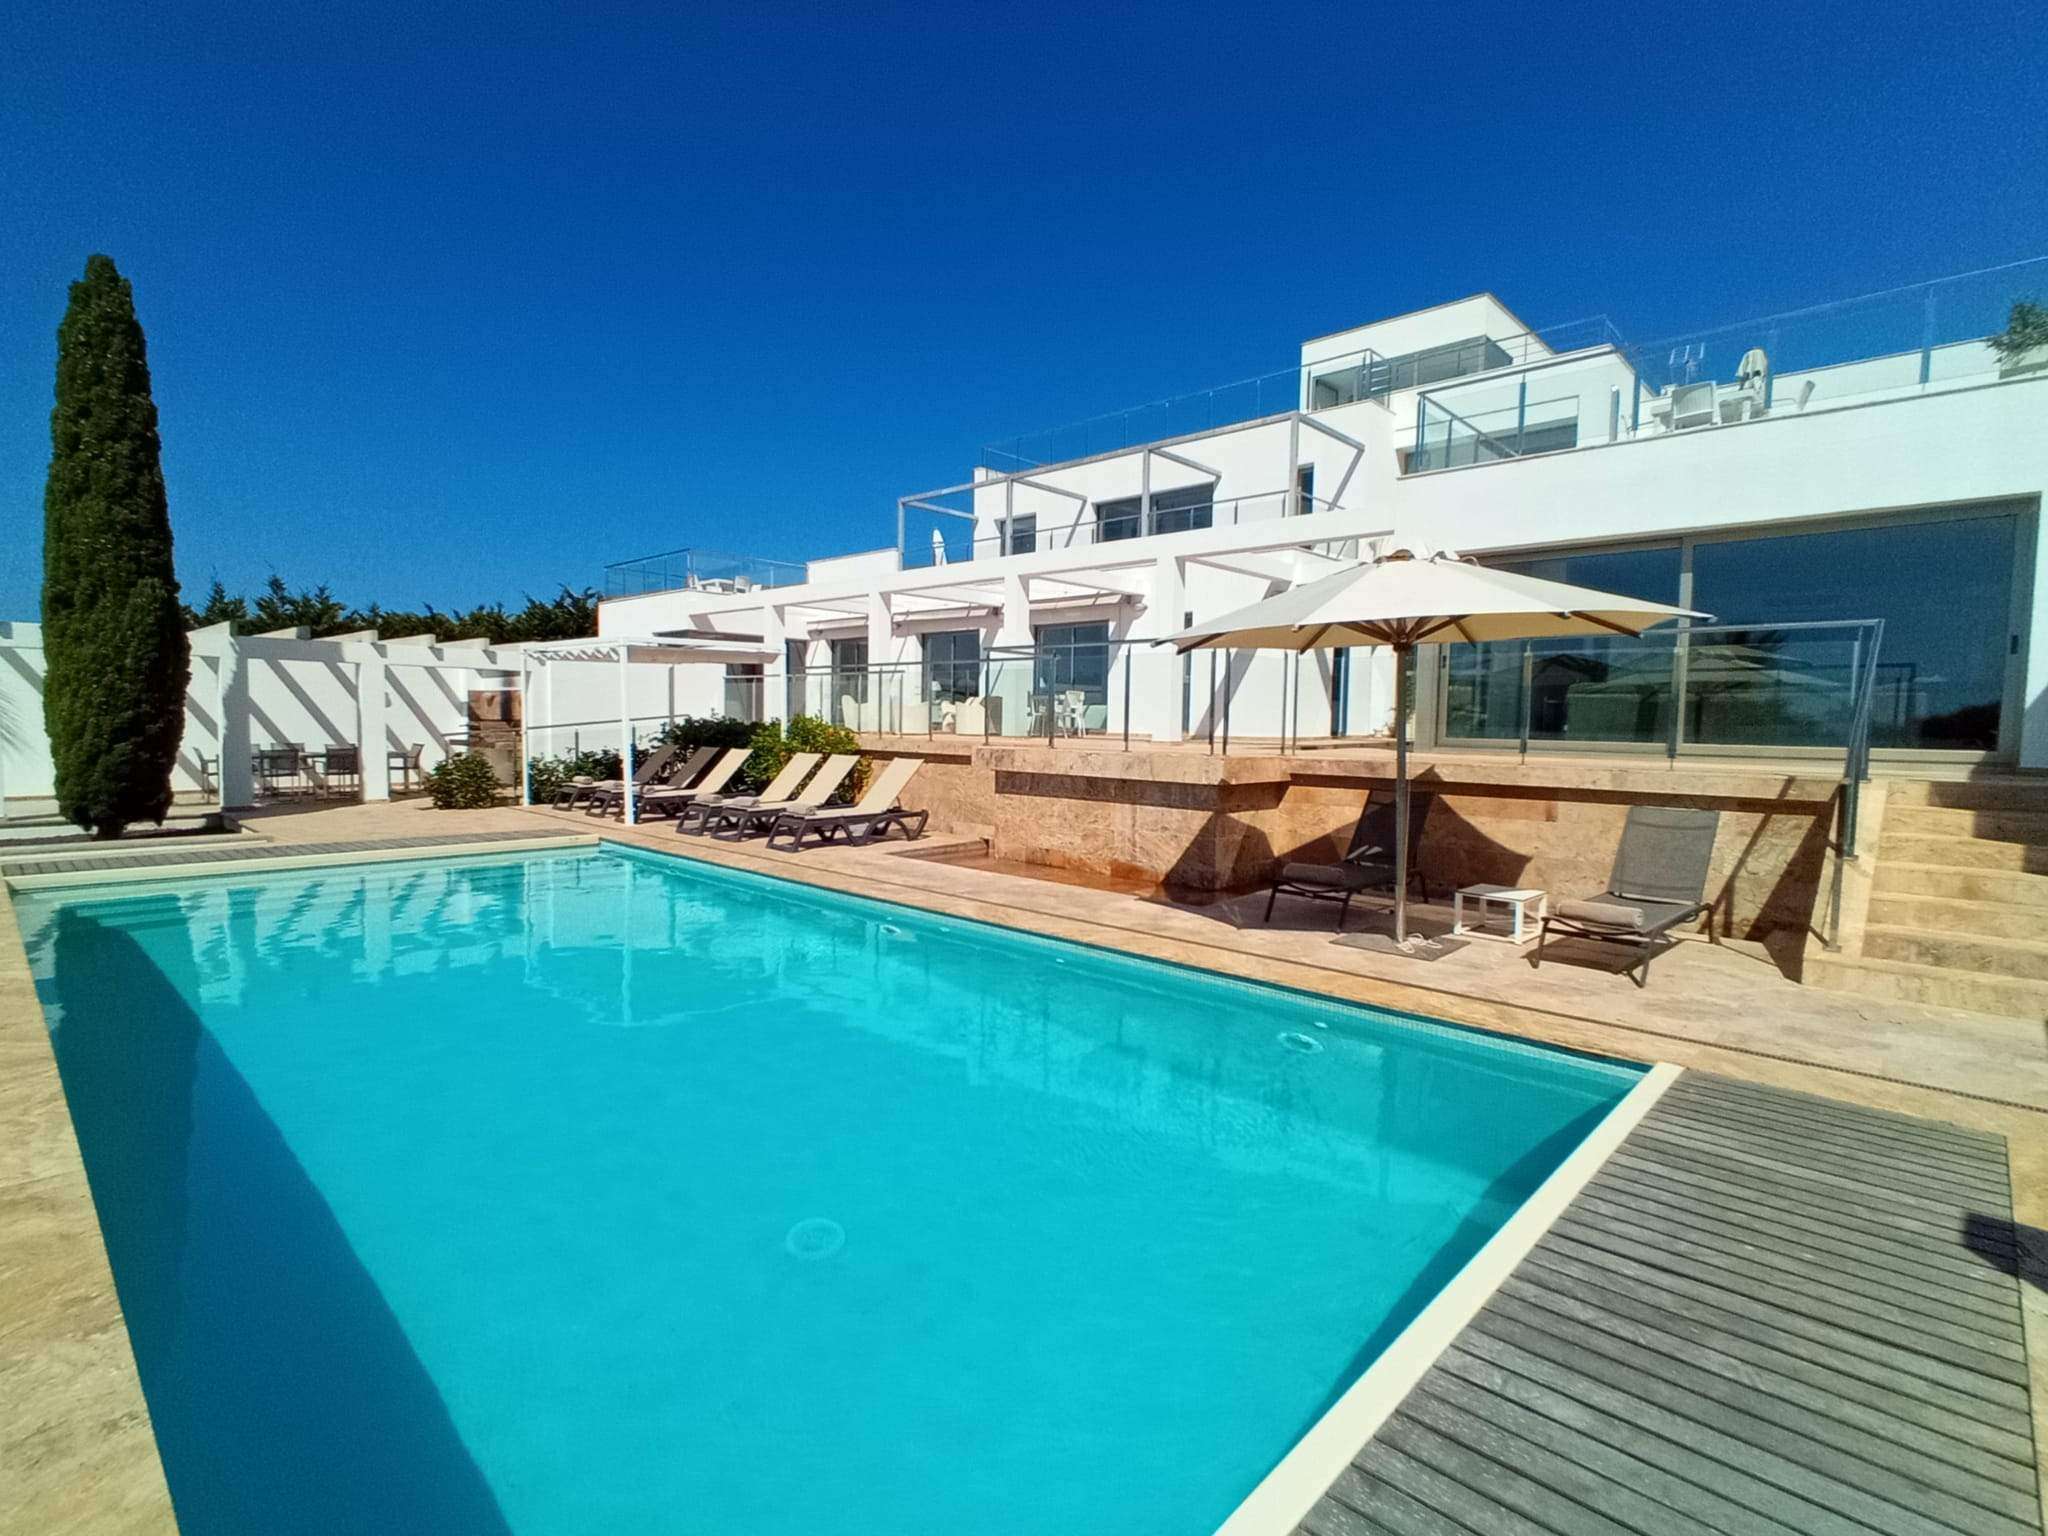 Casa Pitiusa, 5 Bedroom rate, 5 bedroom villa in Mahon, San Luis & South East, Menorca Photo #1